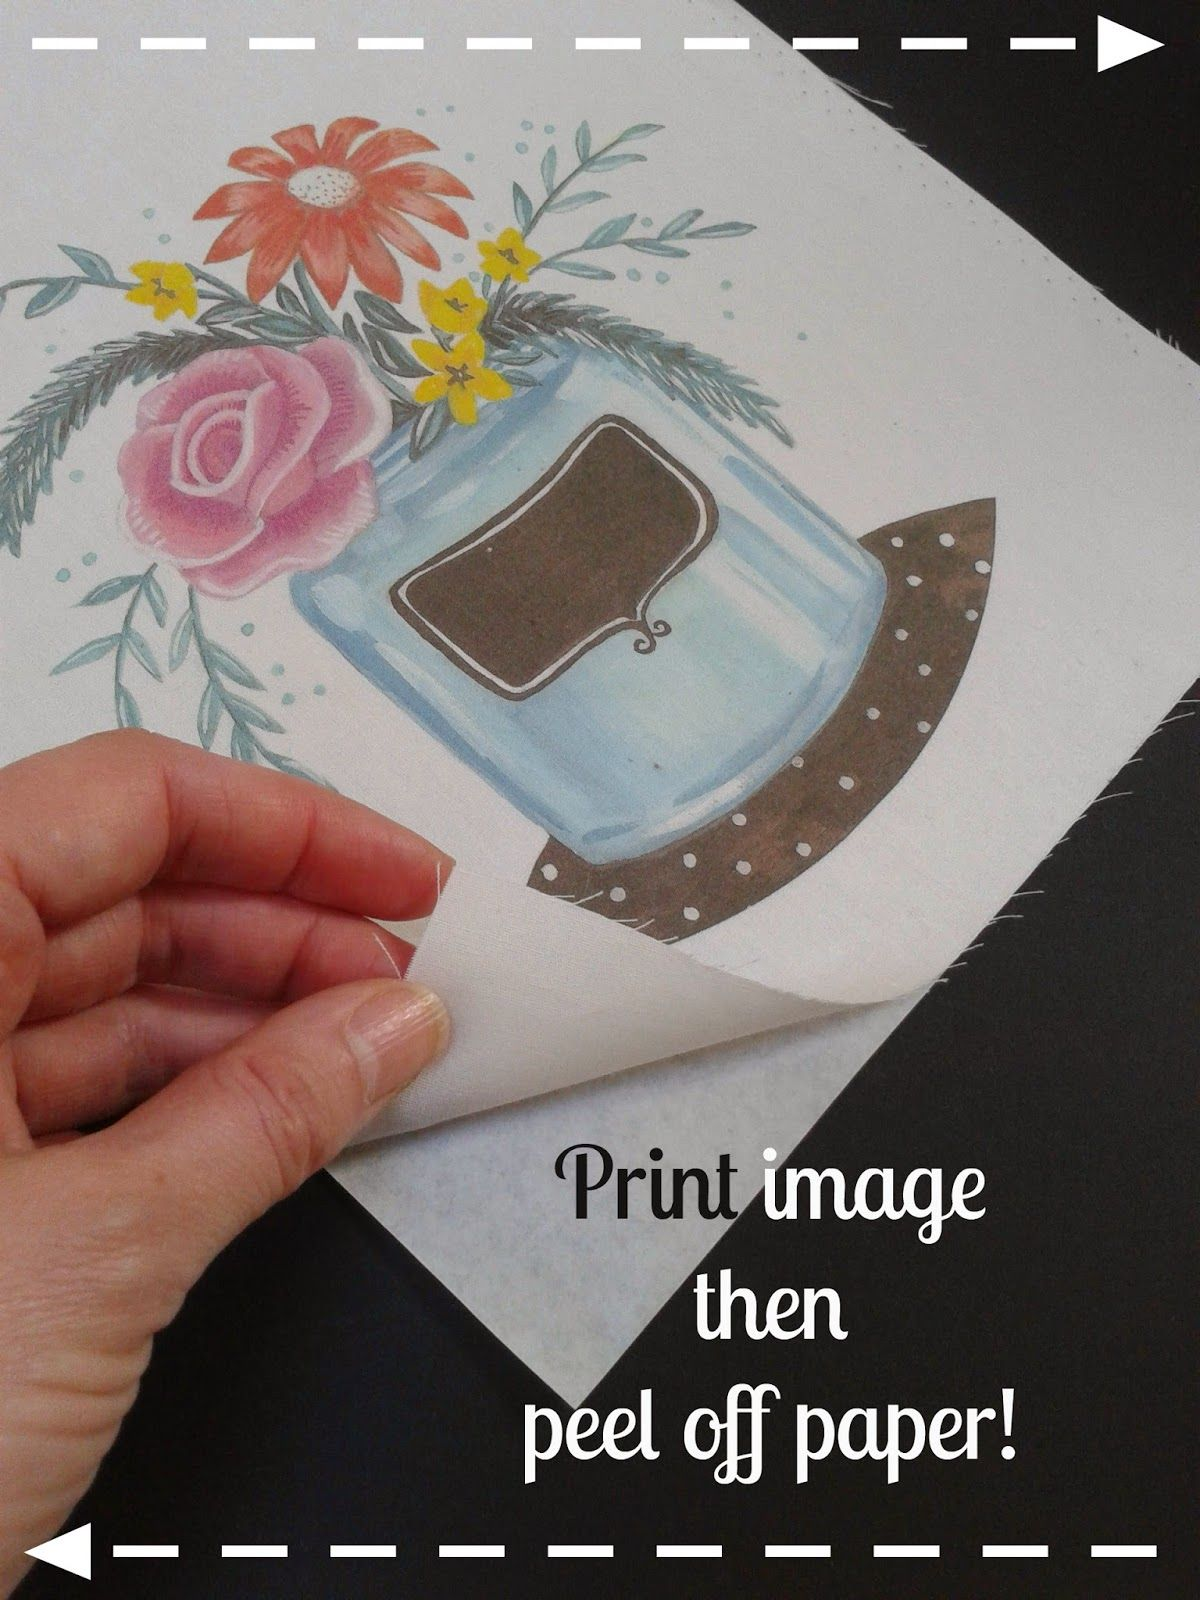 How to print an image onto fabric using your home printer